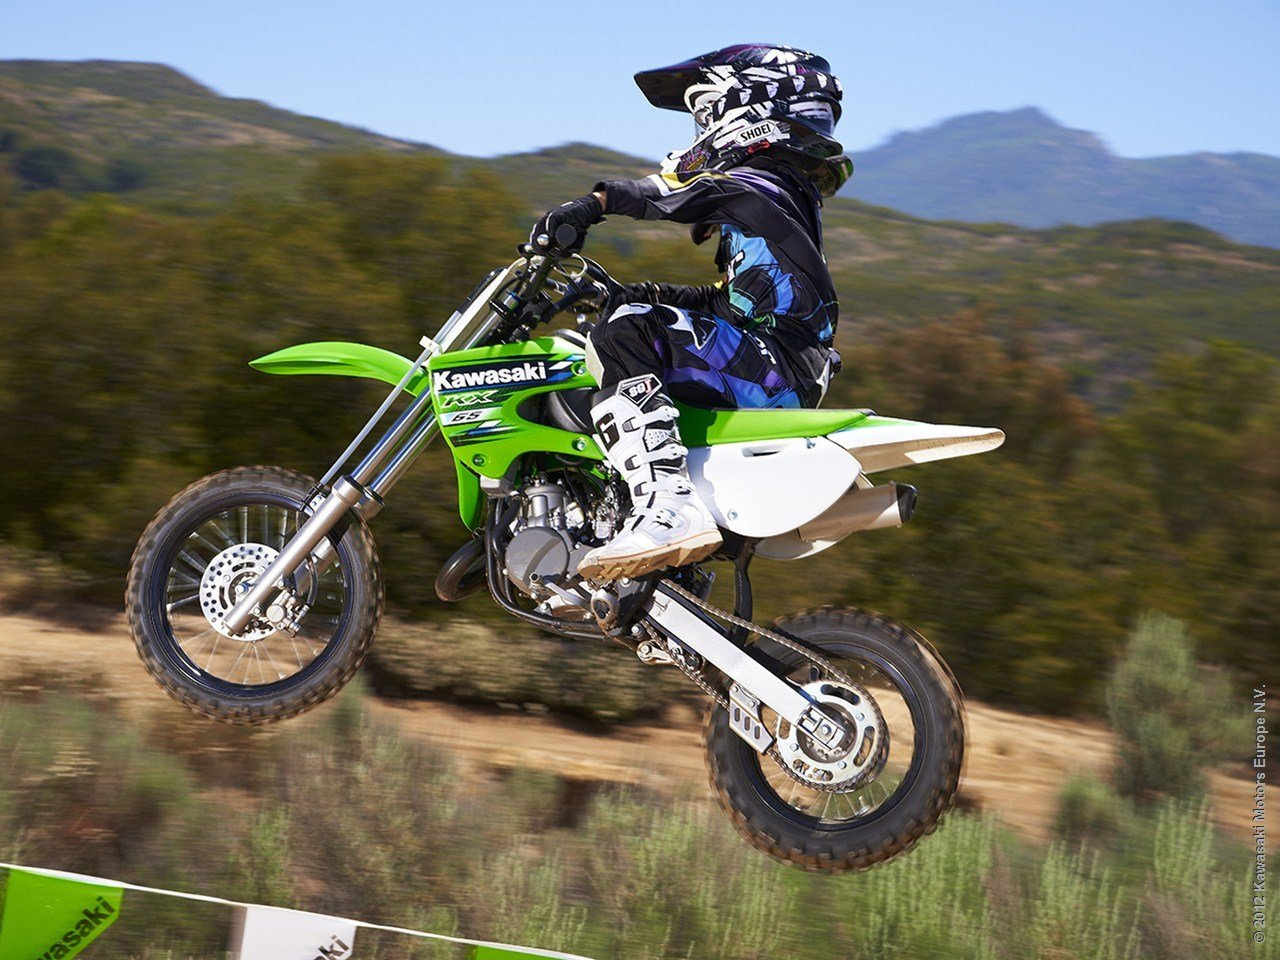 2013 kawasaki kx65 picture 463385 motorcycle review top speed. Black Bedroom Furniture Sets. Home Design Ideas